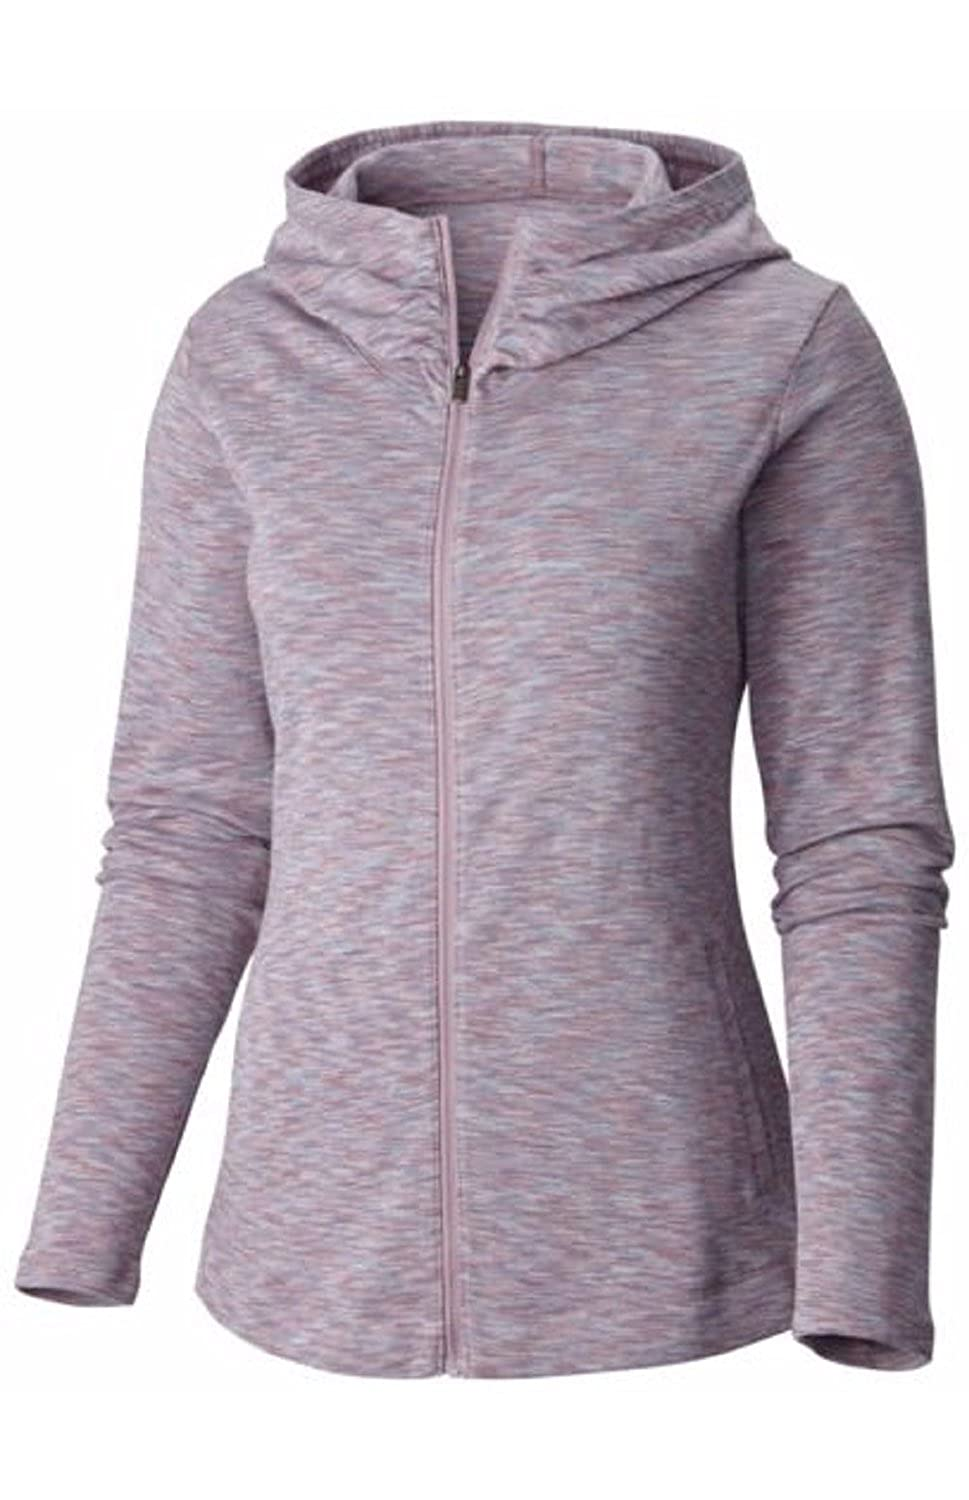 2e1576d4e03 Columbia Women s Plus-Size Outer Spaced Full-Zip Hoodie at Amazon Women s  Clothing store